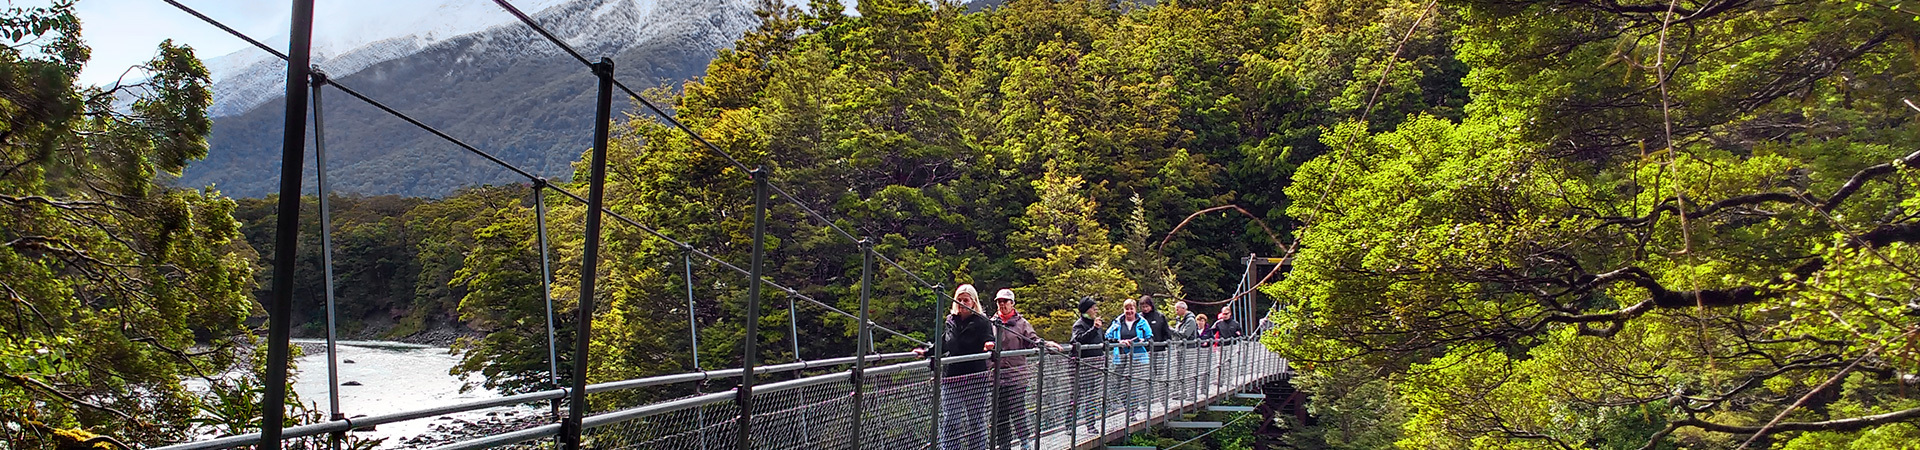 MoaTrek small group coach tour clients enjoying walk at Blue Pools, West Coast New Zealand